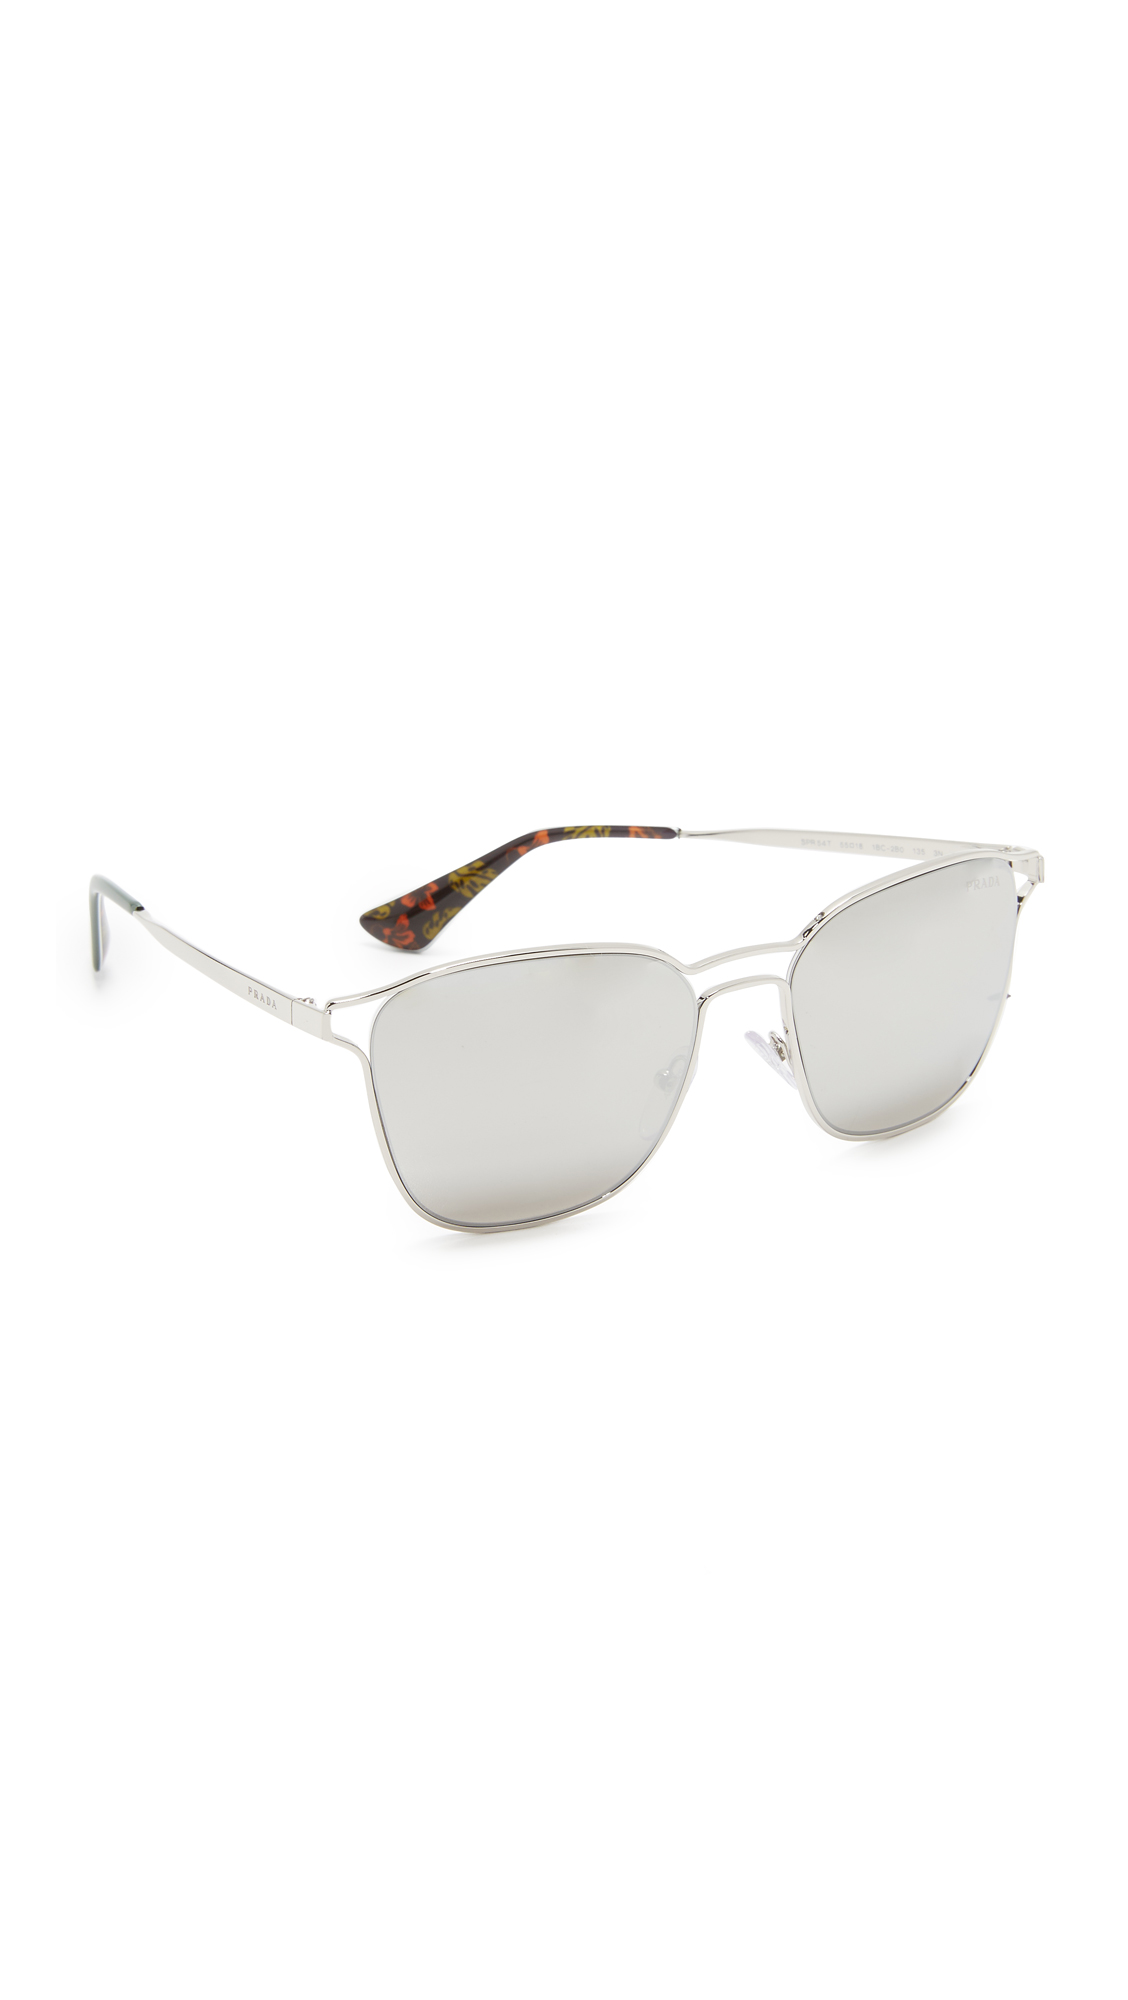 Prada Metal Double Bridge Mirrored Sunglasses - Silver/Light Grey at Shopbop